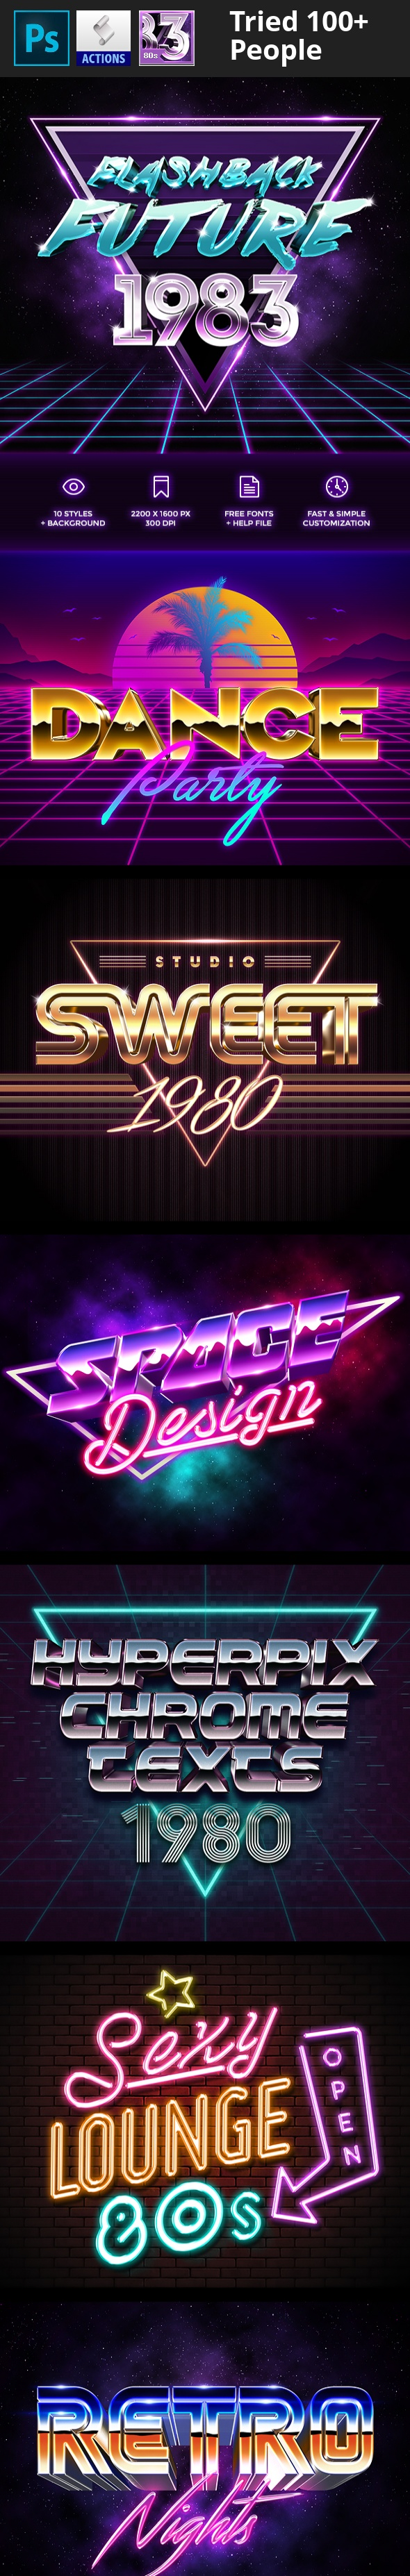 80s style text effects pinterest 80s style edit text and 3d text